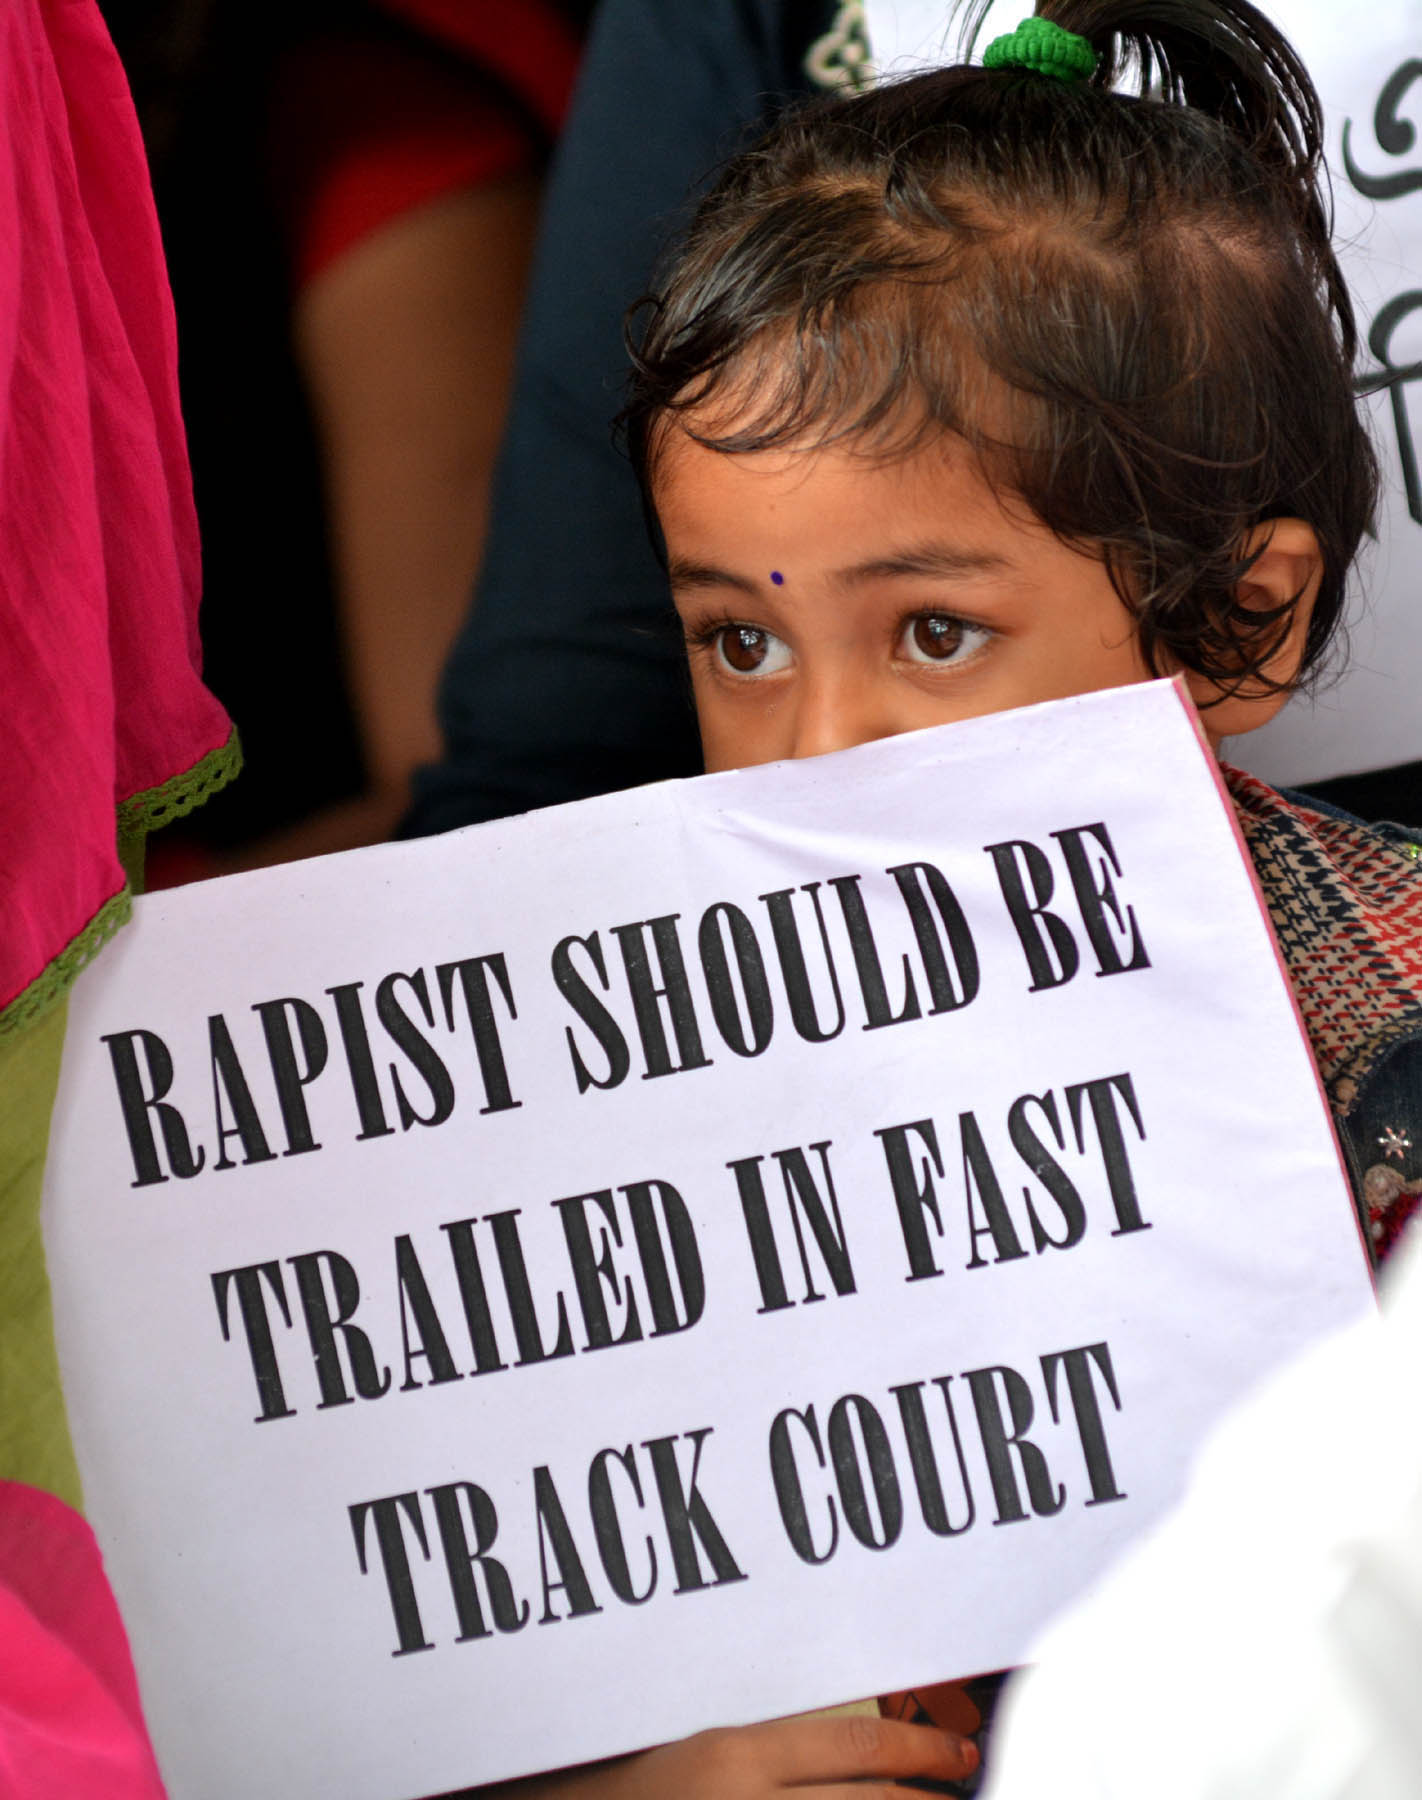 A young girl takes part in a protest against the rape of the eight-year-old girl in Kathua.